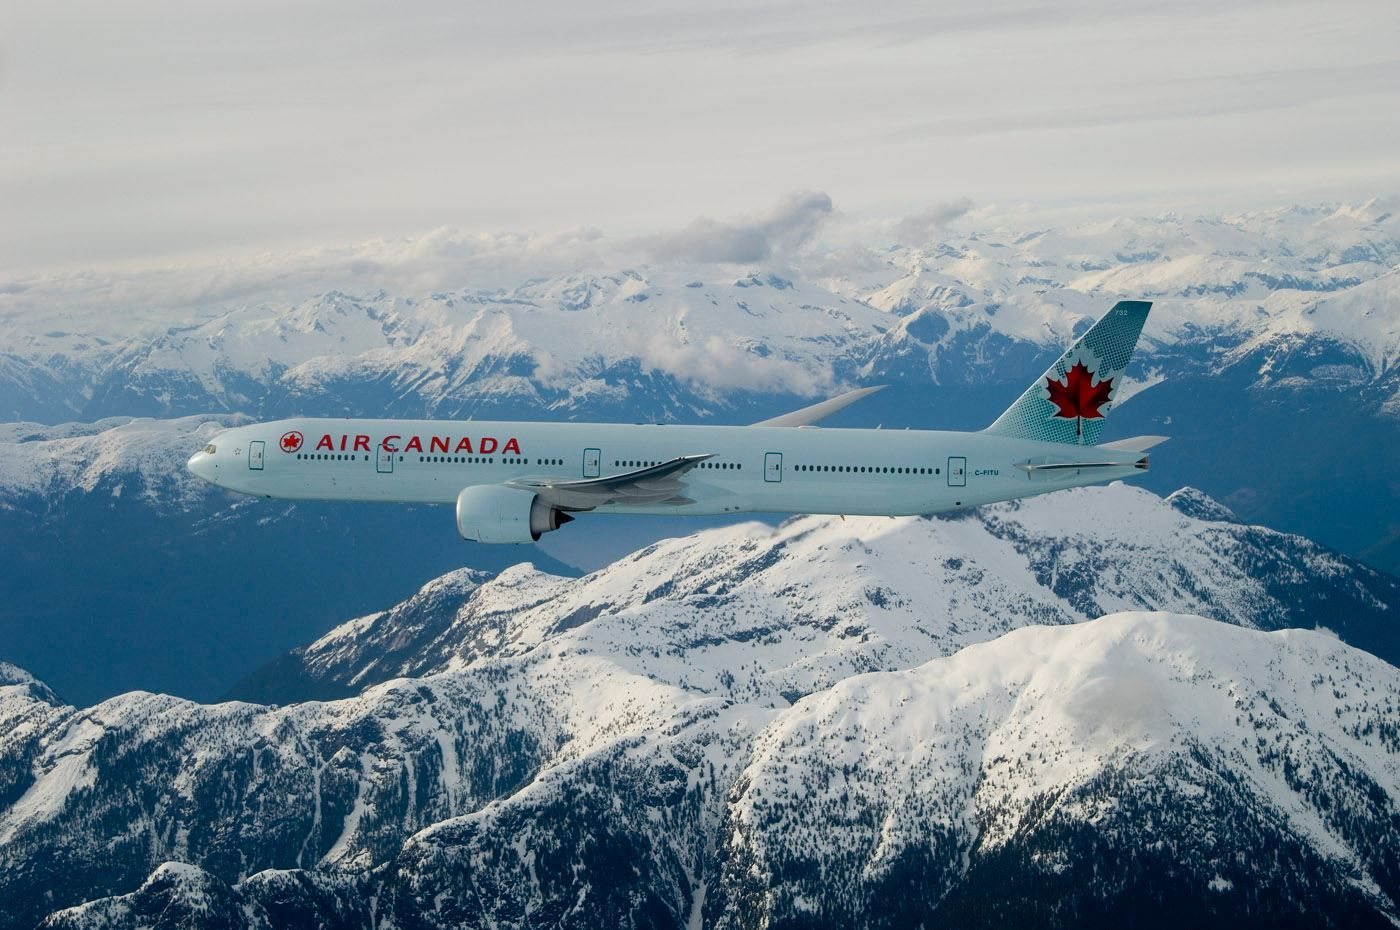 Boeing 777, Air Canada Airline of Canada Beautiful!!! 飛行機